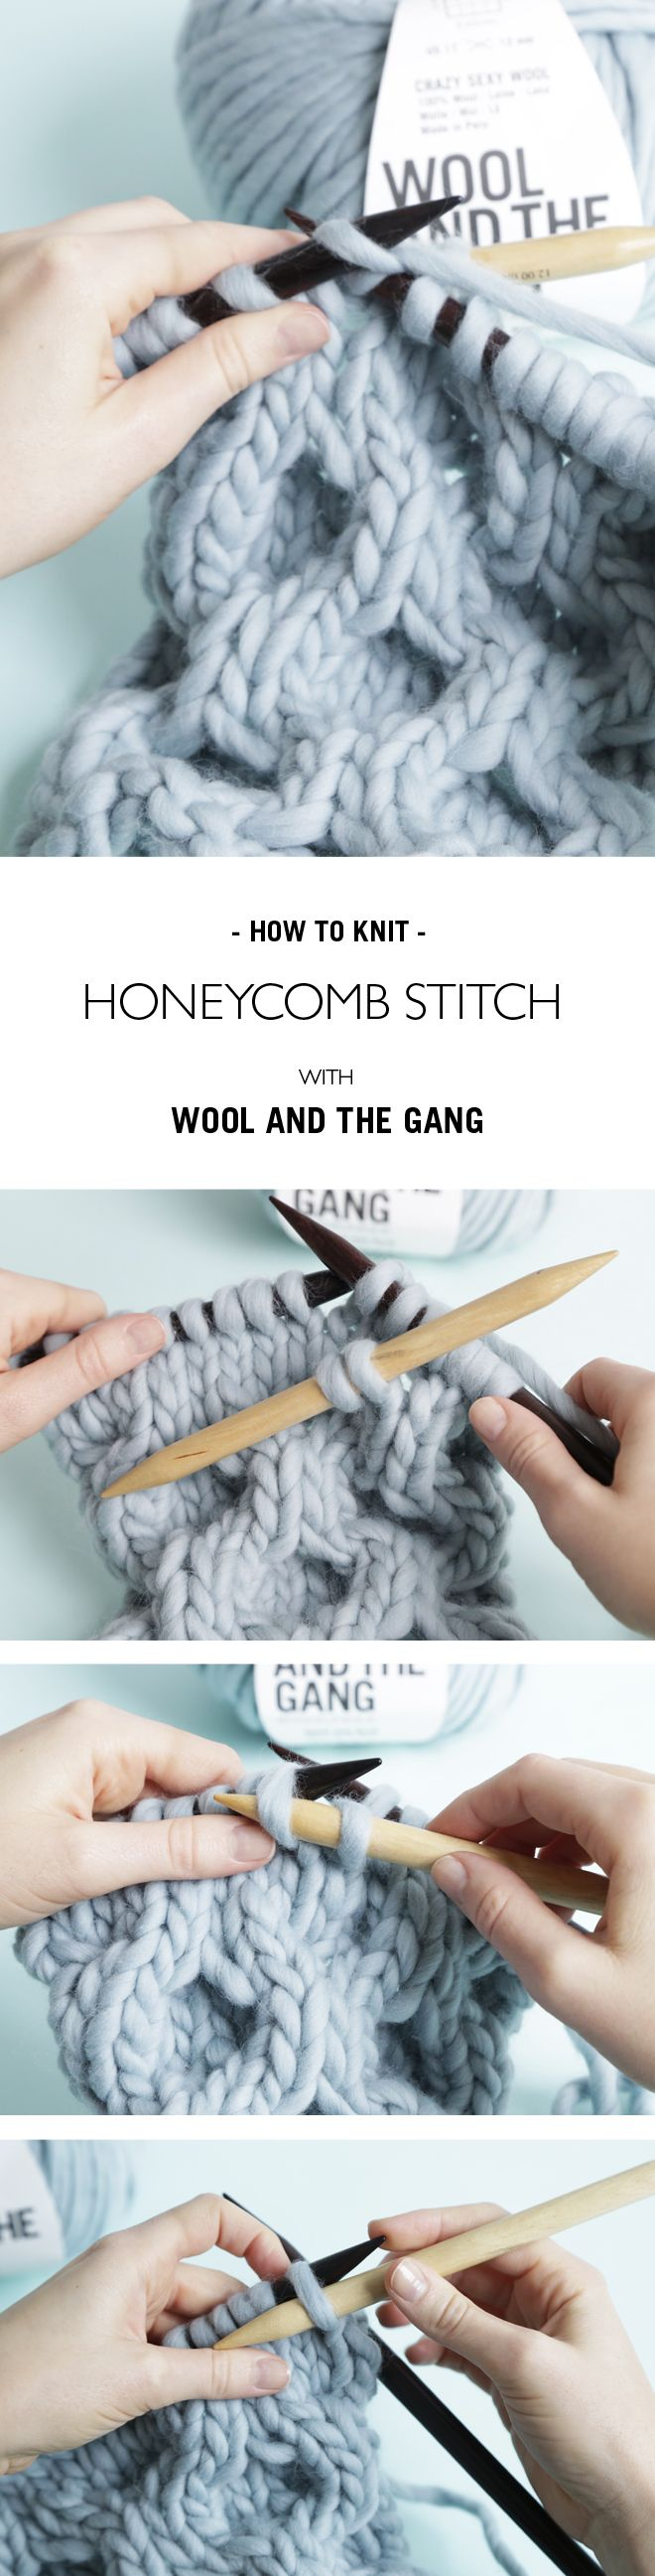 How To Knit: Honeycomb Stitch with Wool and the Gang